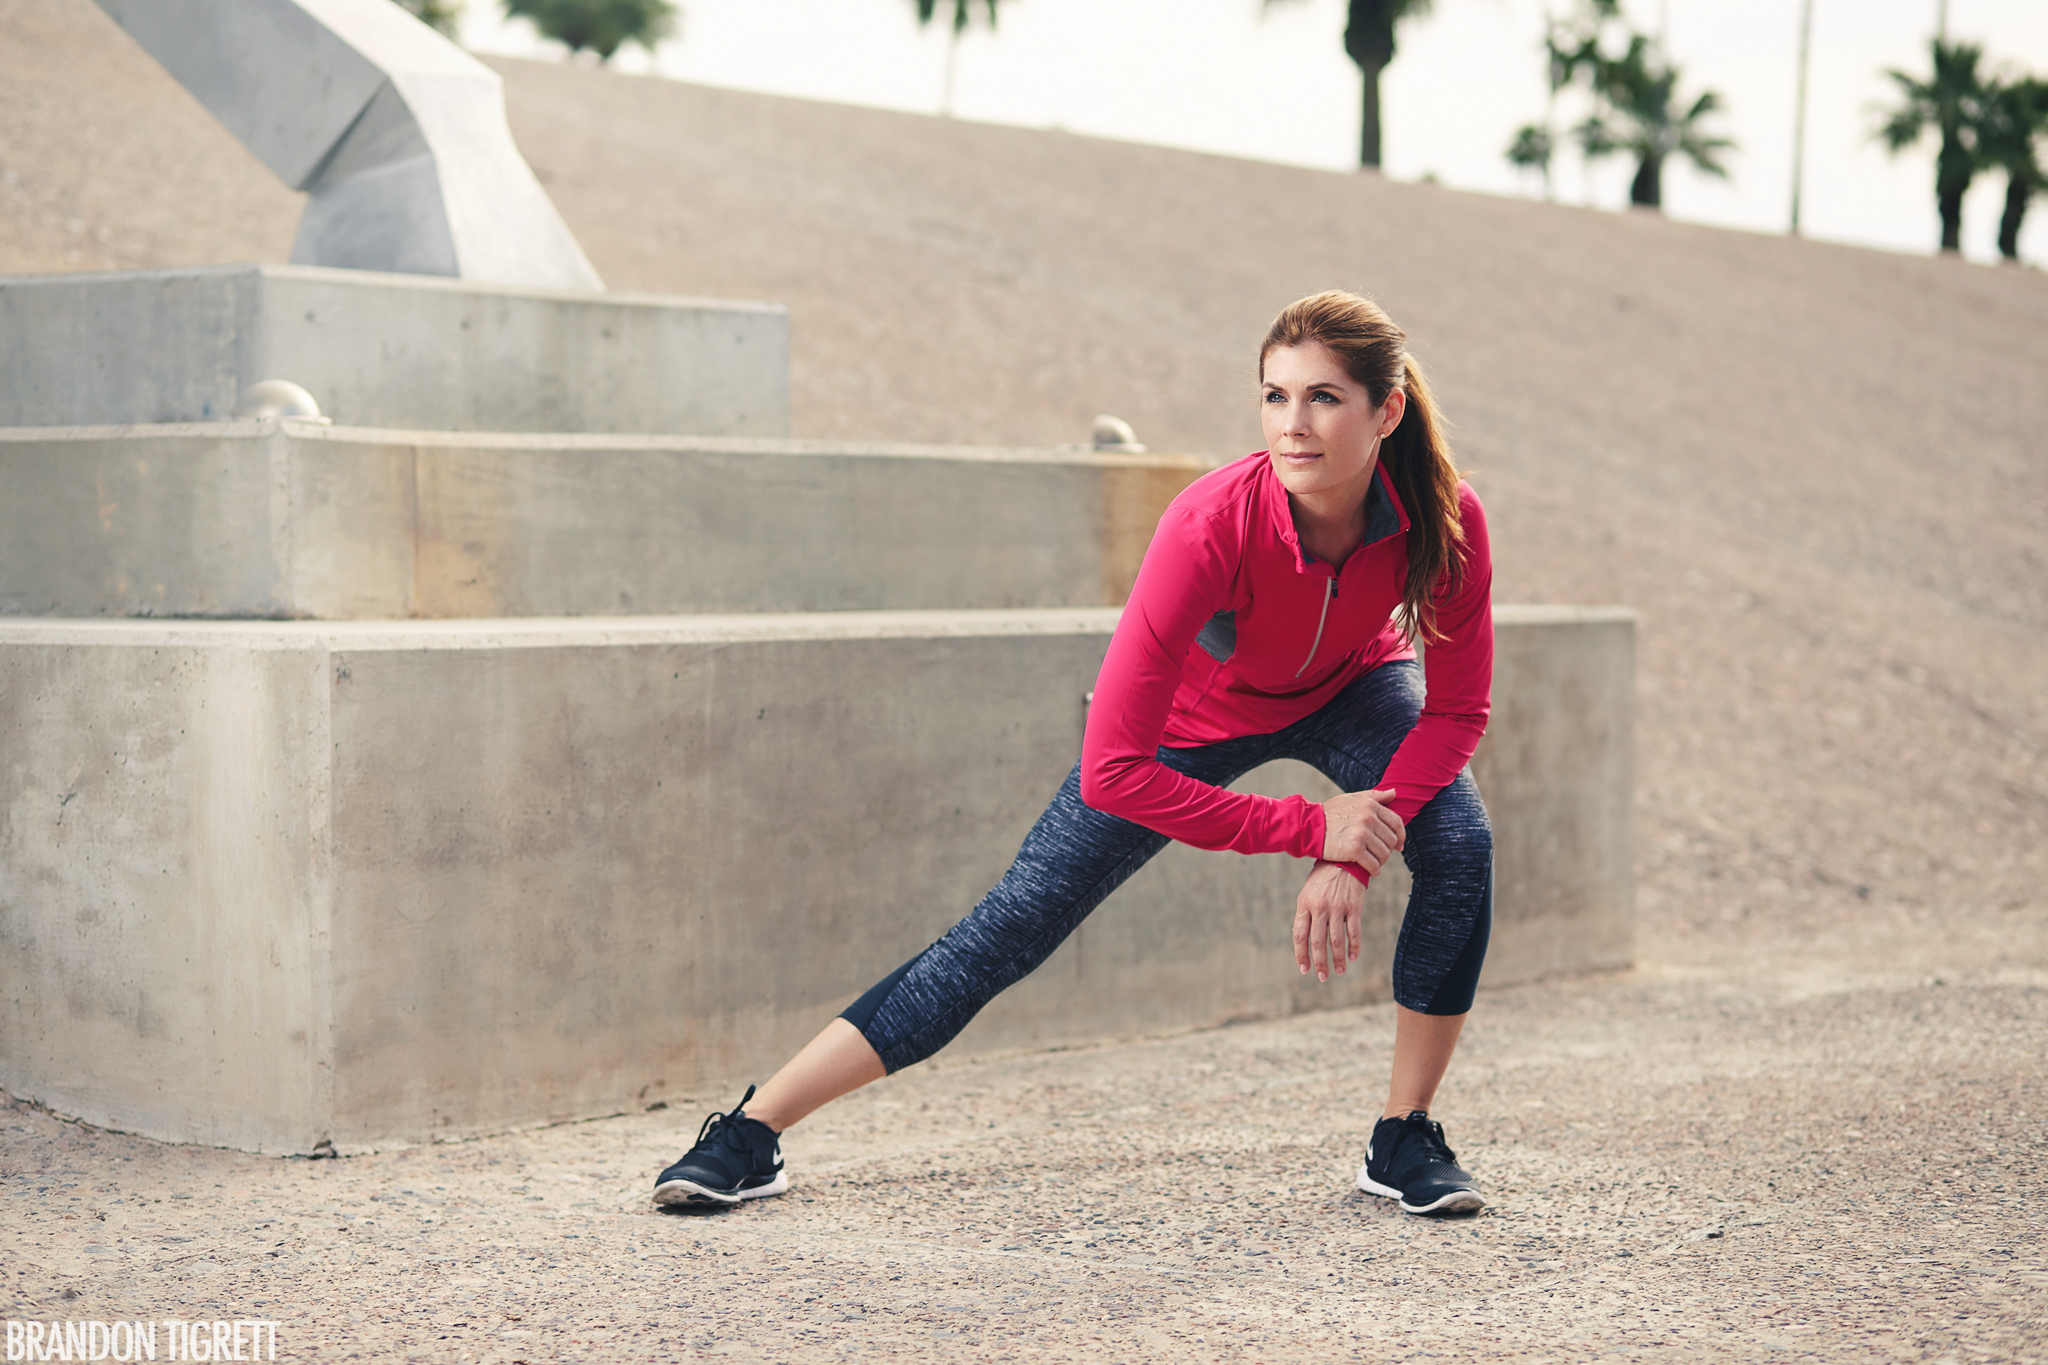 a3bece724a Nike Lifestyle Fitness Shoot With Model Julie Stevens Scottsdale